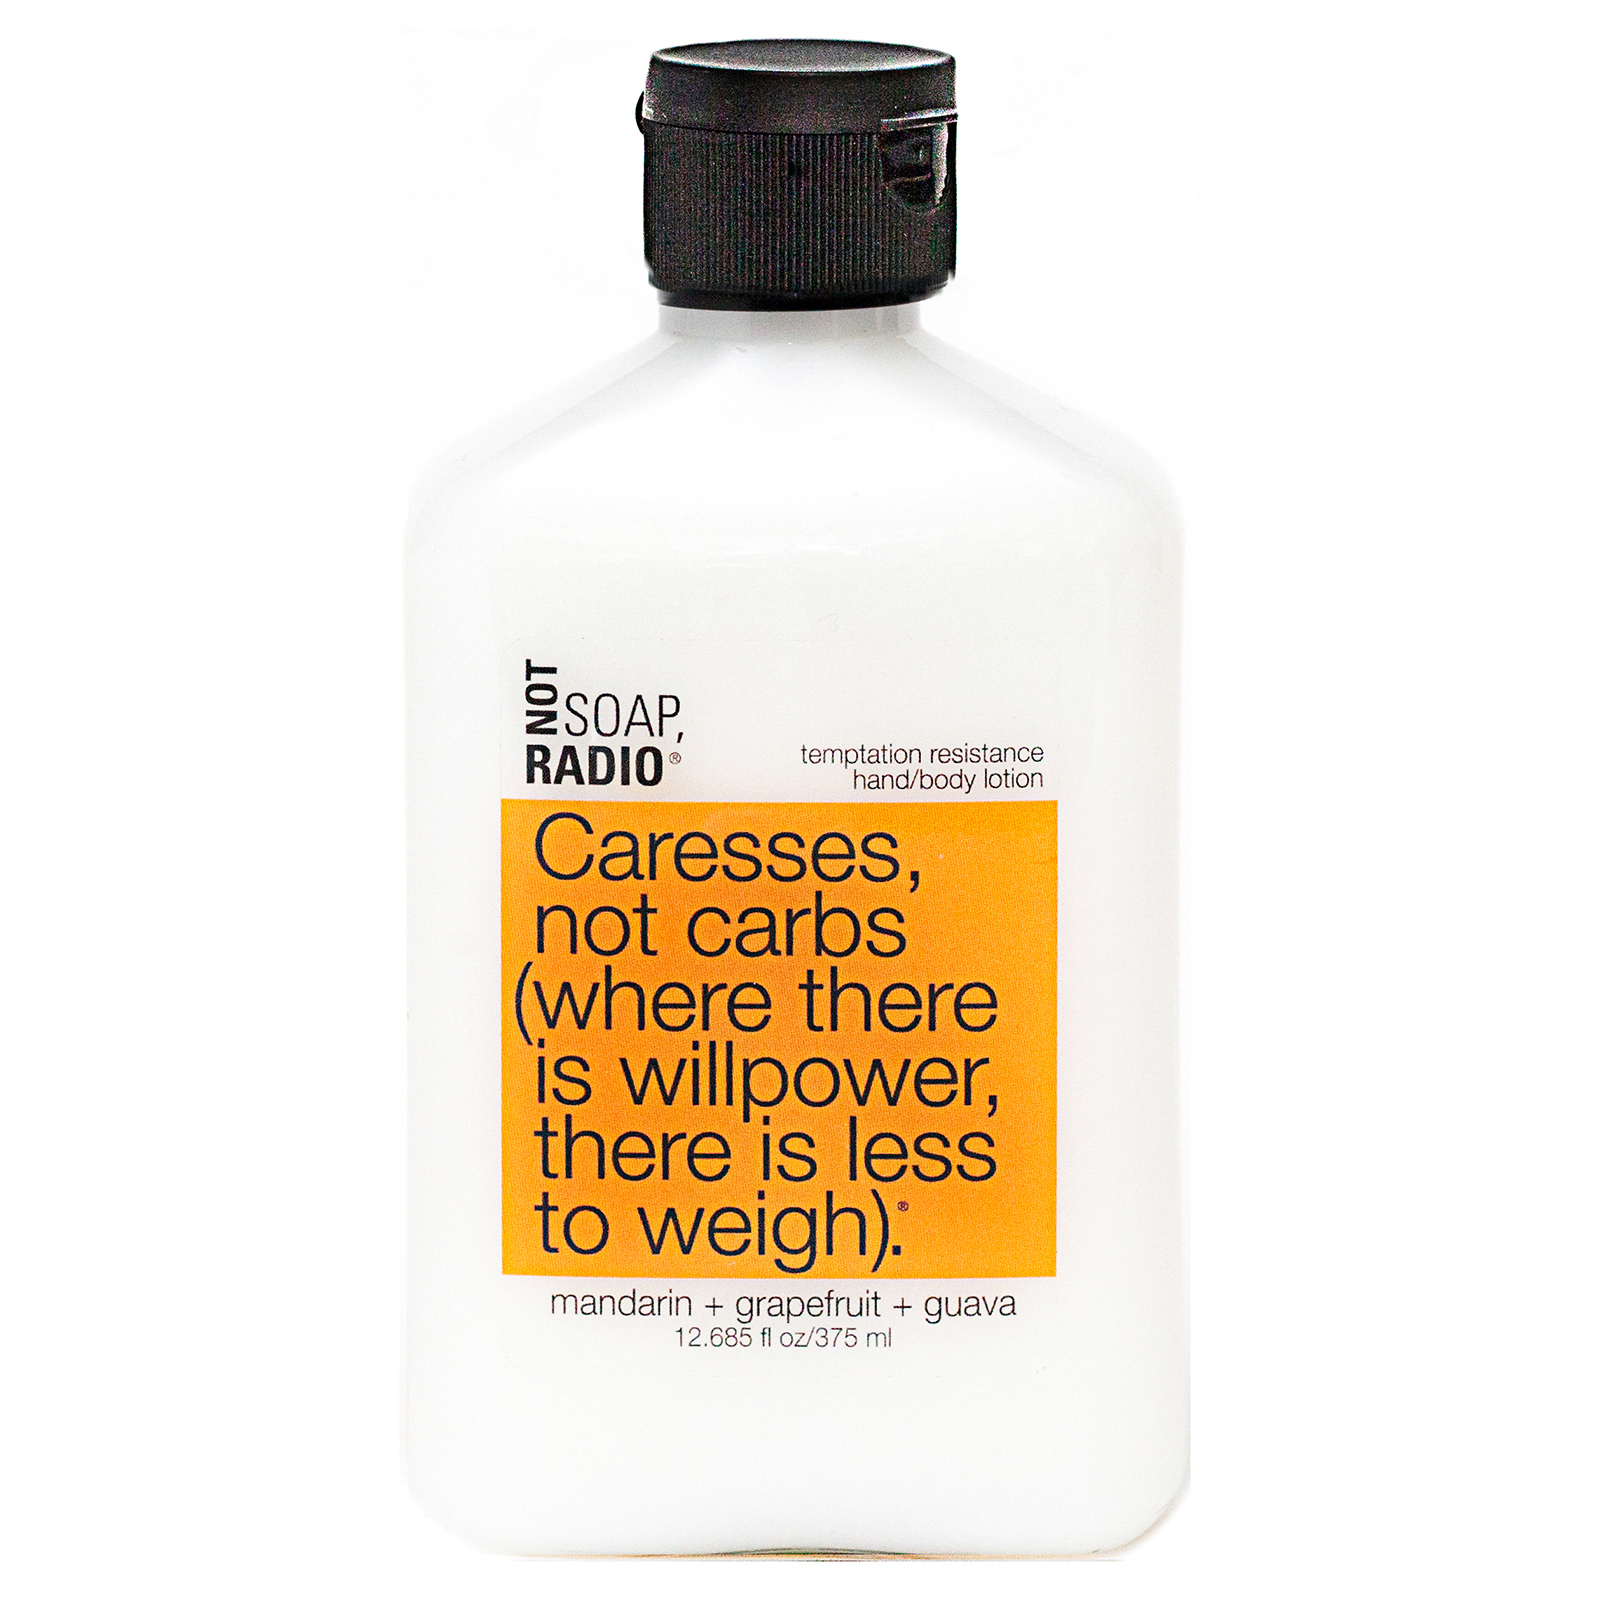 Not Soap Radio Caresses, not carbs (where there is willpower, there is less to weigh) Hand/Body Lotion 375ml